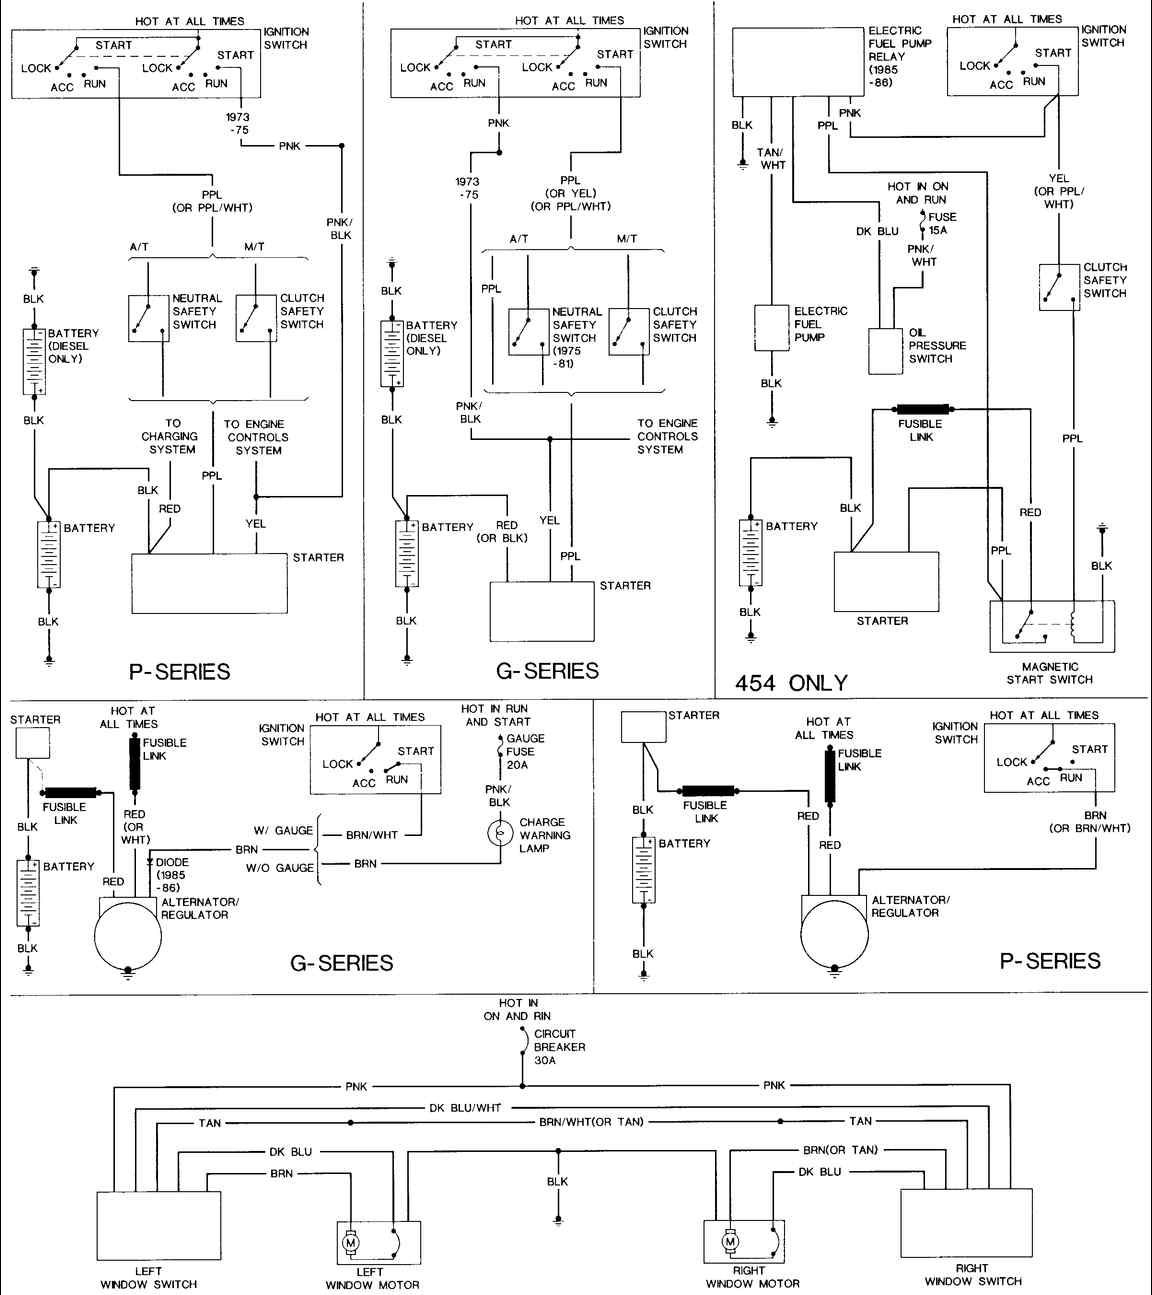 chevy g20 wiring diagram wiring diagram mega 1995 chevy g20 stereo wiring diagram chevy g20 wiring diagram [ 1152 x 1295 Pixel ]